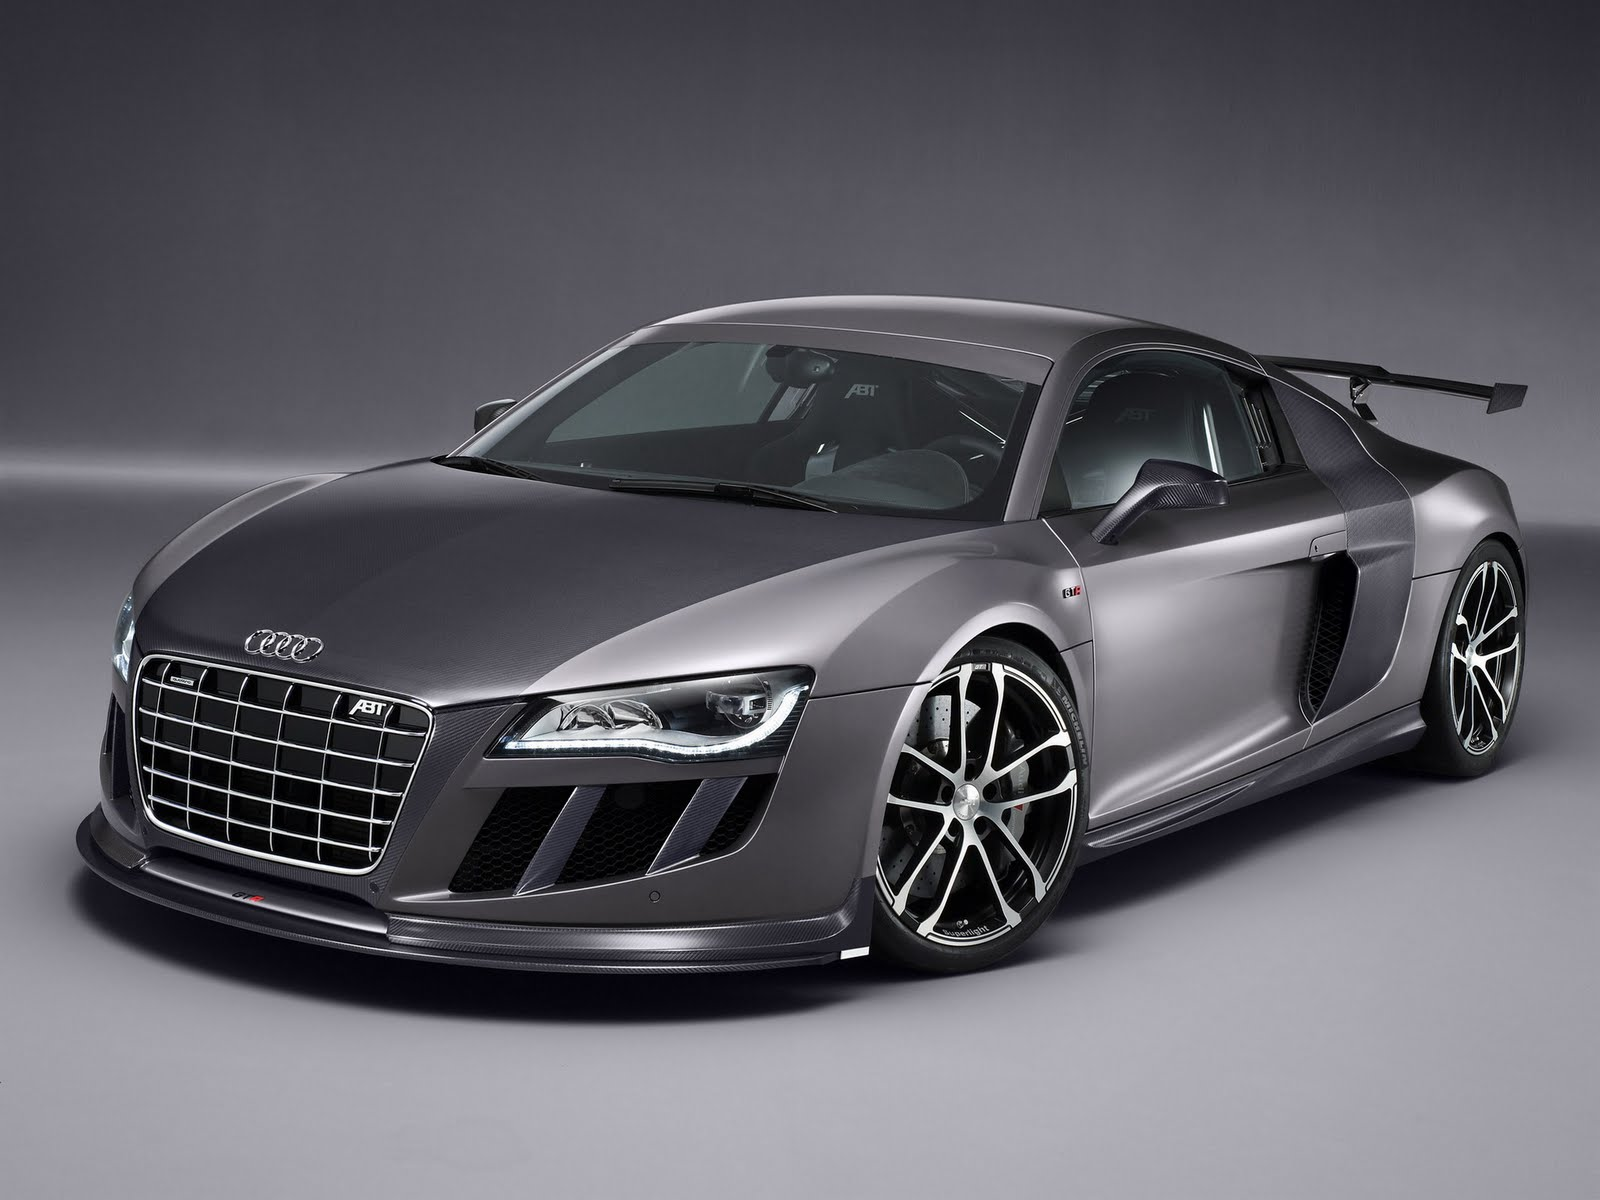 car au audi r8 tuning by abt used and new cars from australia car company and best australian. Black Bedroom Furniture Sets. Home Design Ideas